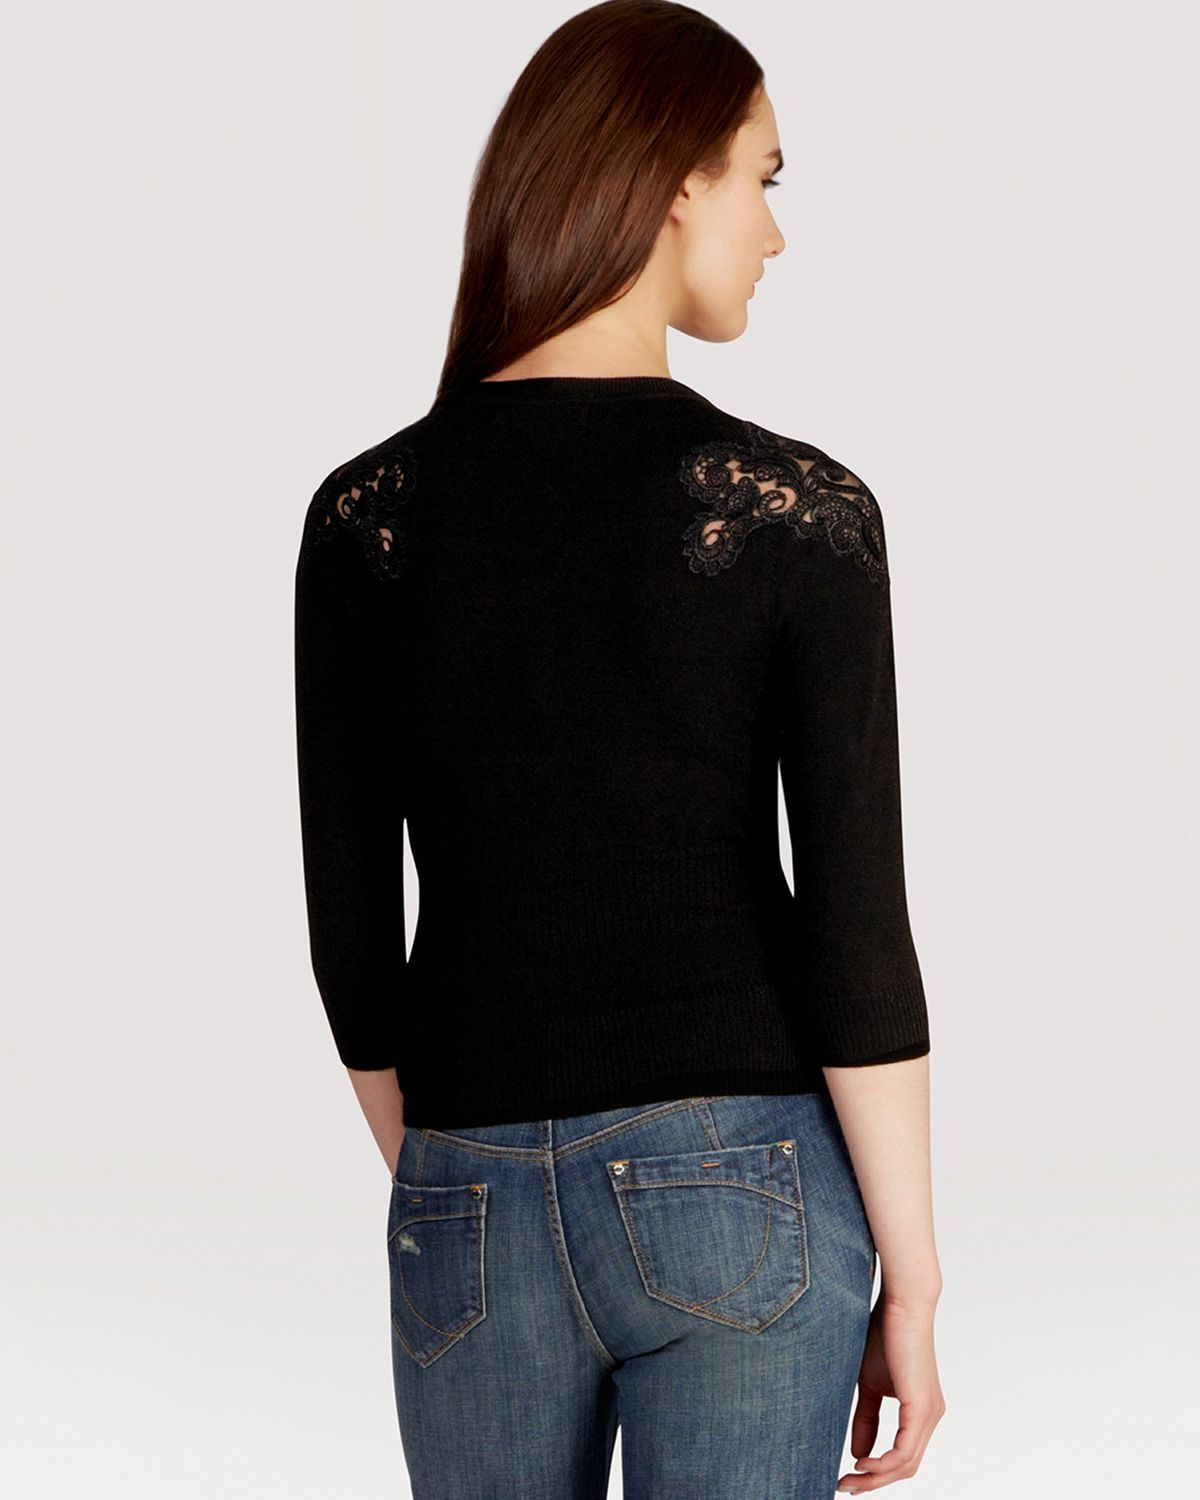 Karen millen Lace Panel Signature Cardigan in Black | Lyst